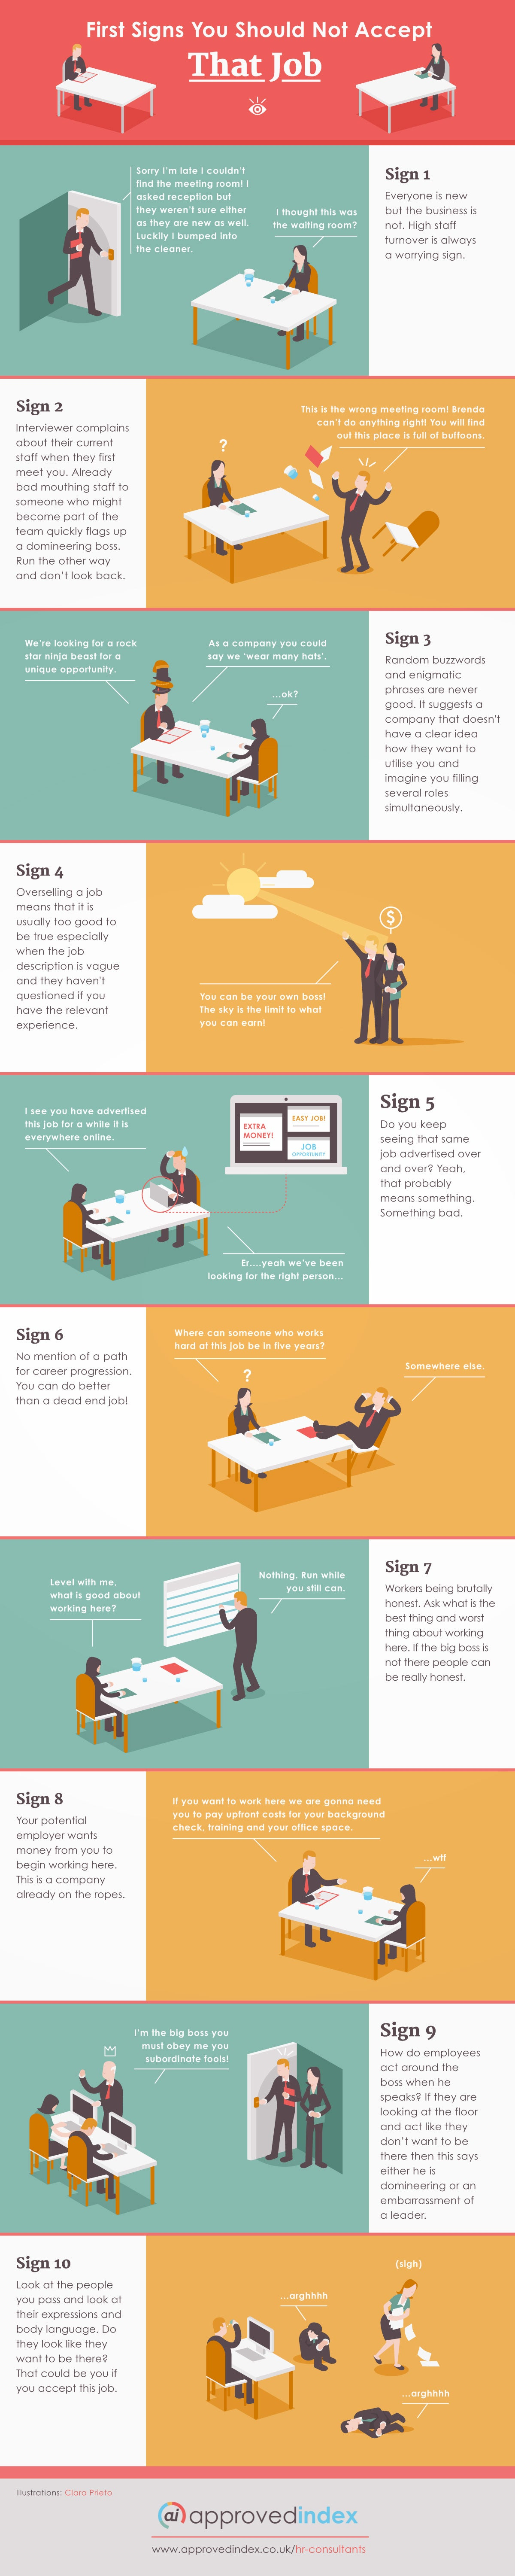 How to Use Social Media to Find Customers (Infographic)